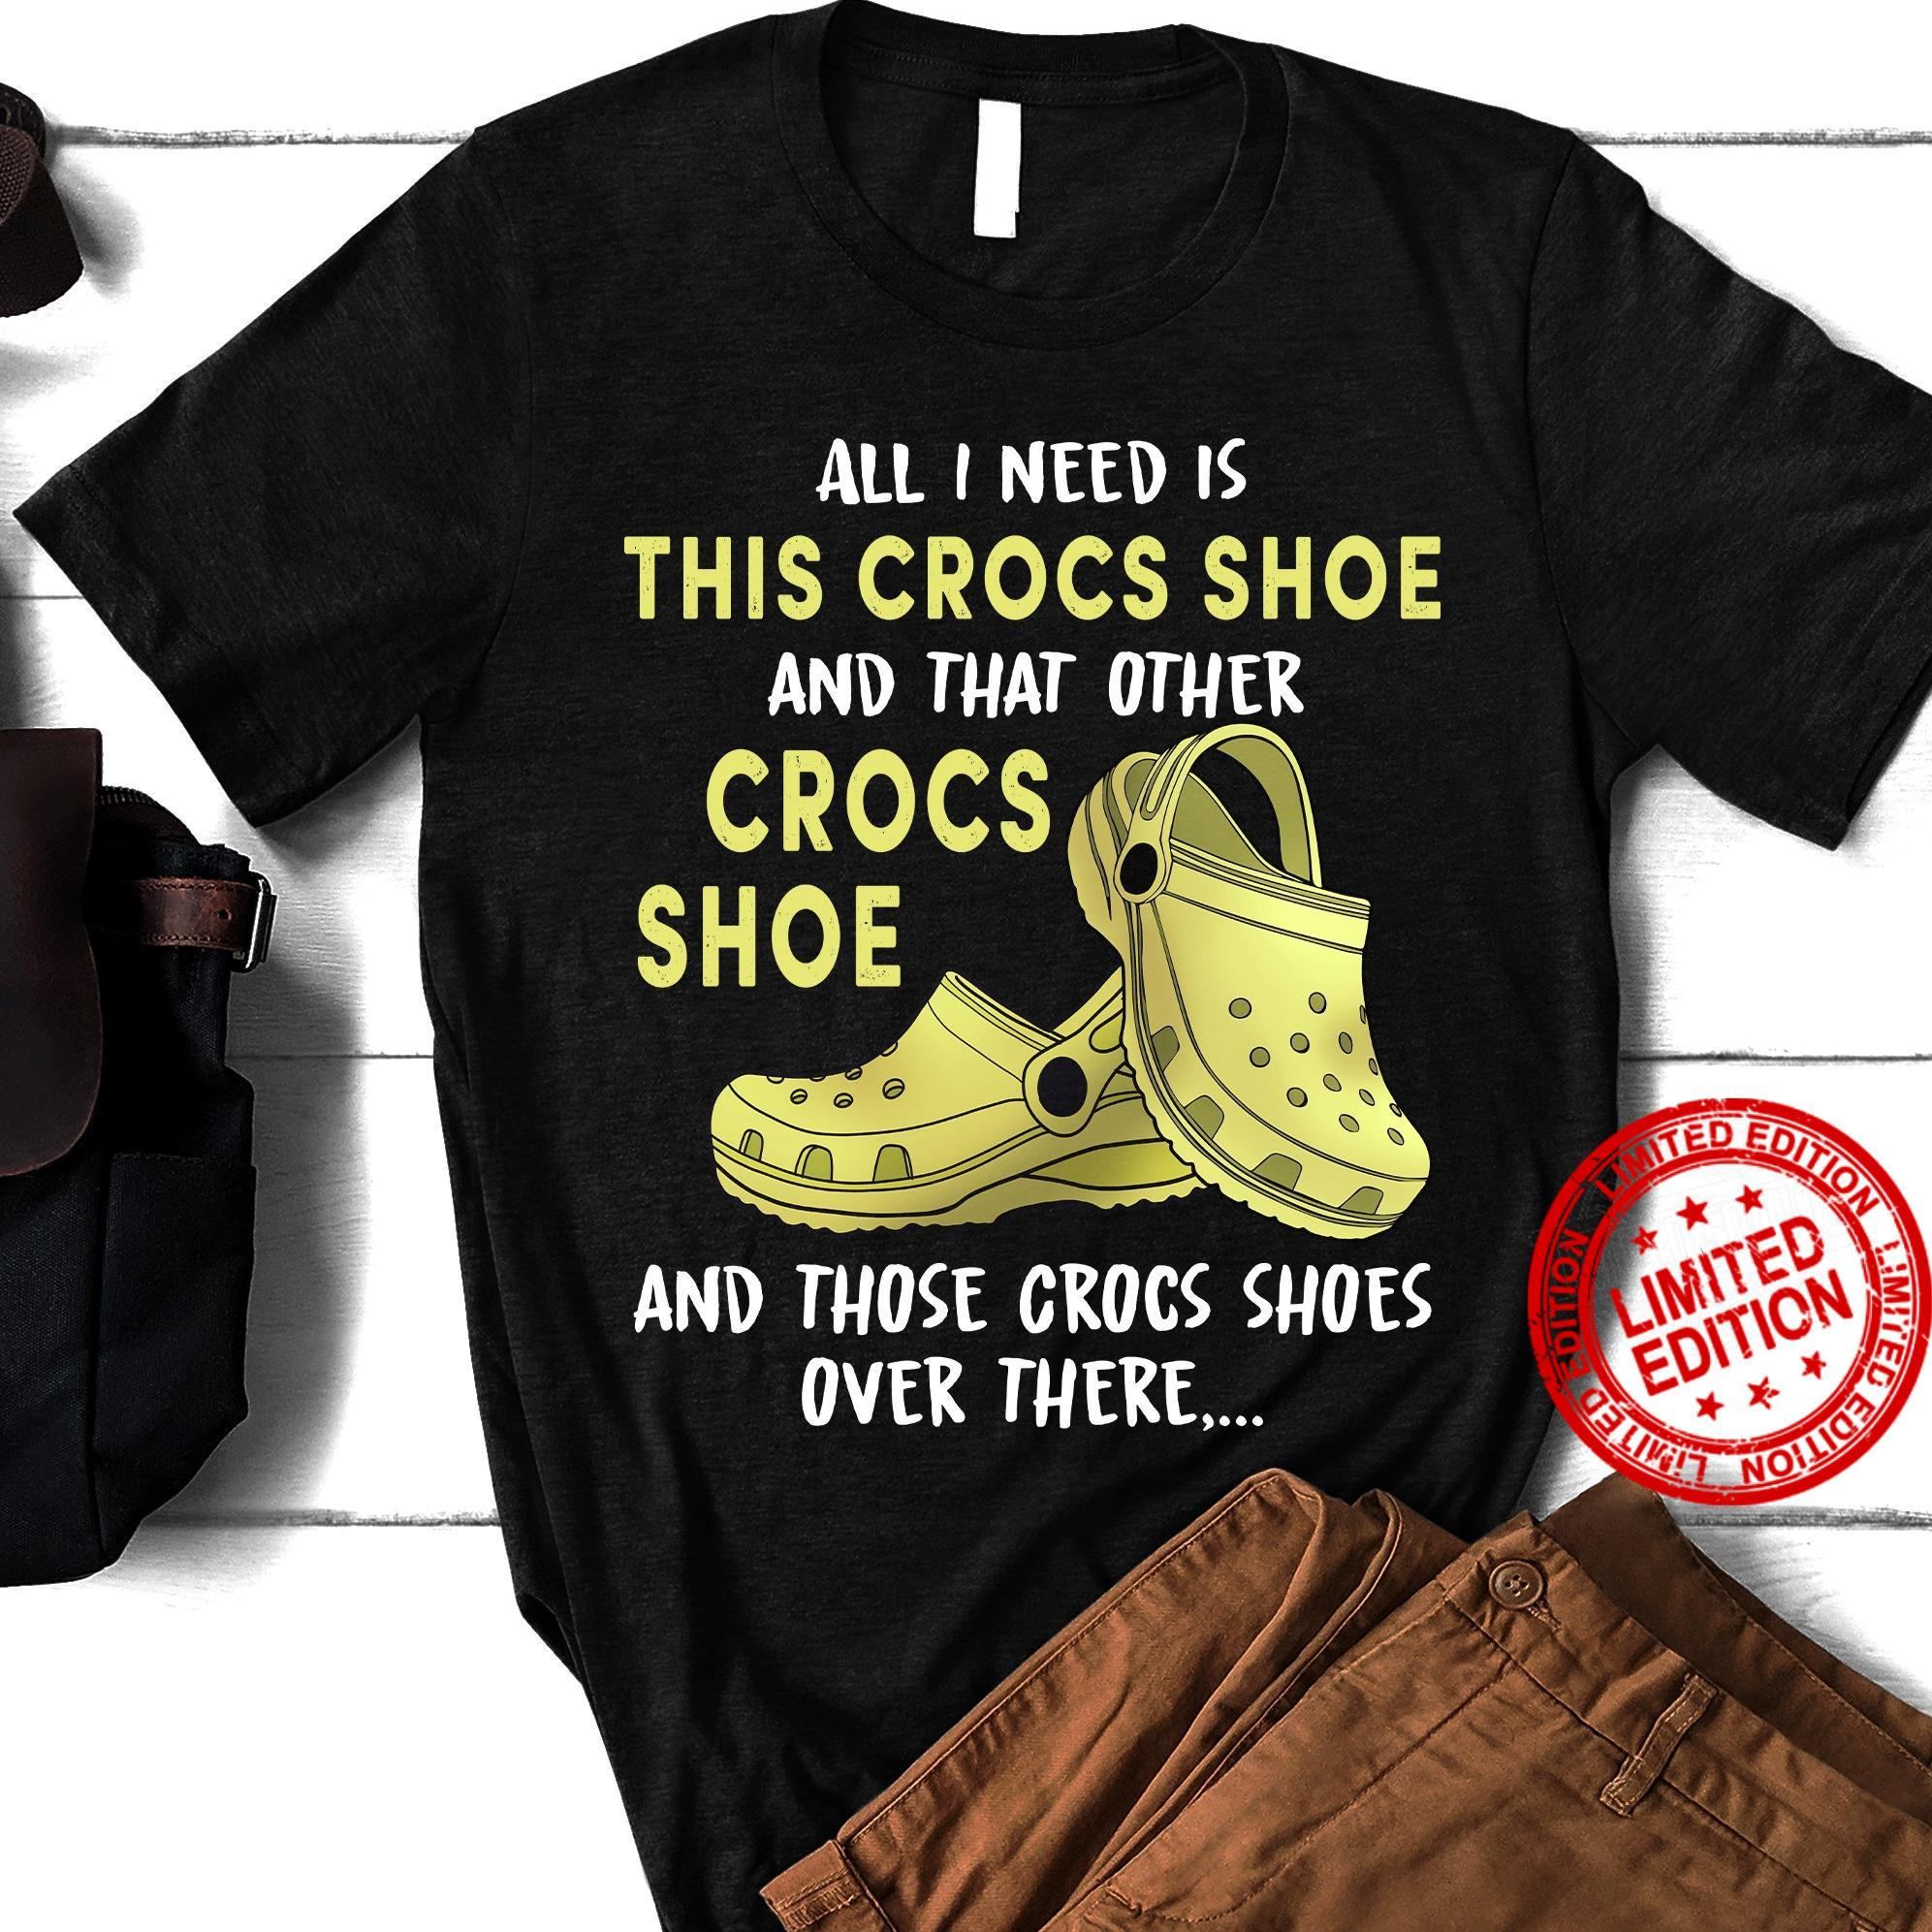 All I Need Is This Cross Shoe And That Other Crocs Shoe And Those Crocs Shoes Over There Shirt